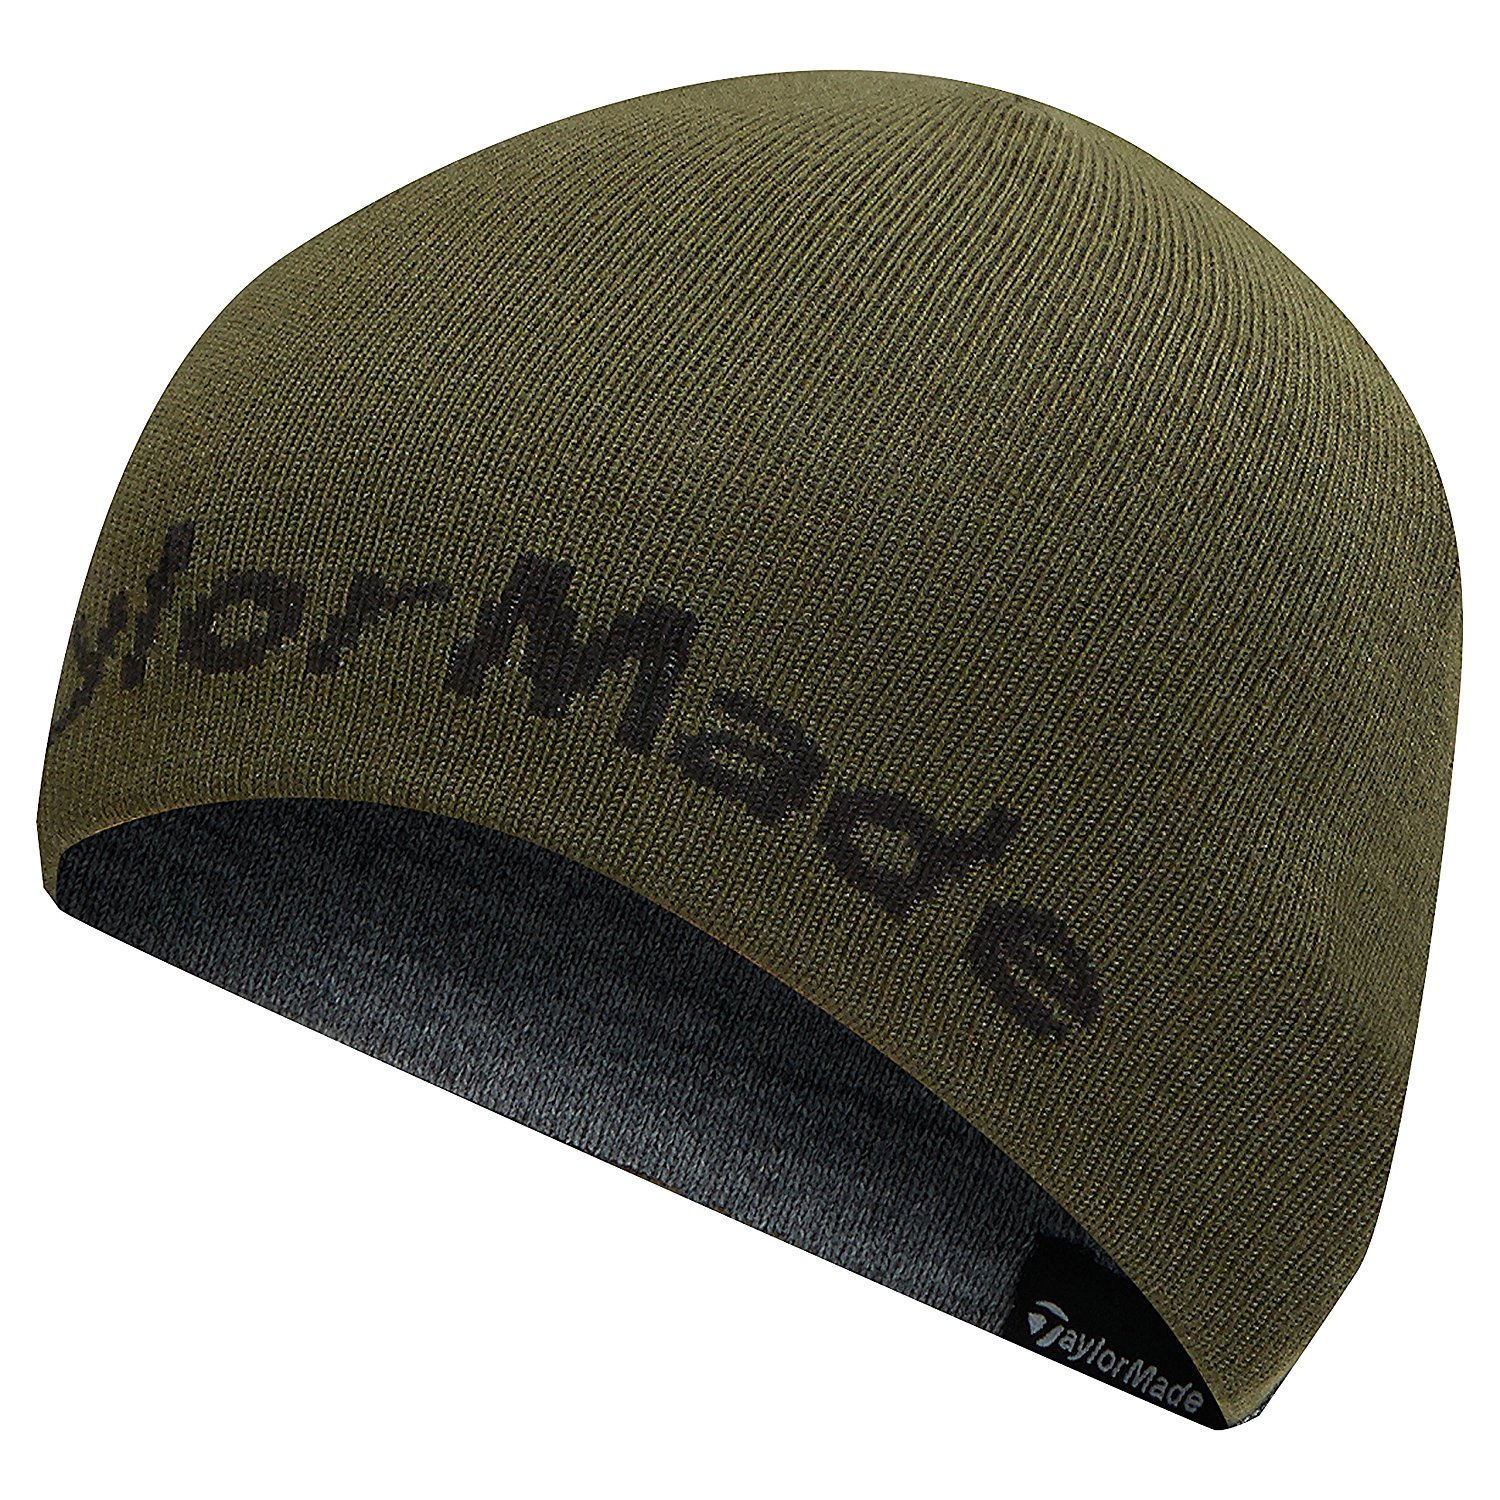 5905083a Buy Taylormade Mens Golf Beanies for Lowest Prices Online!